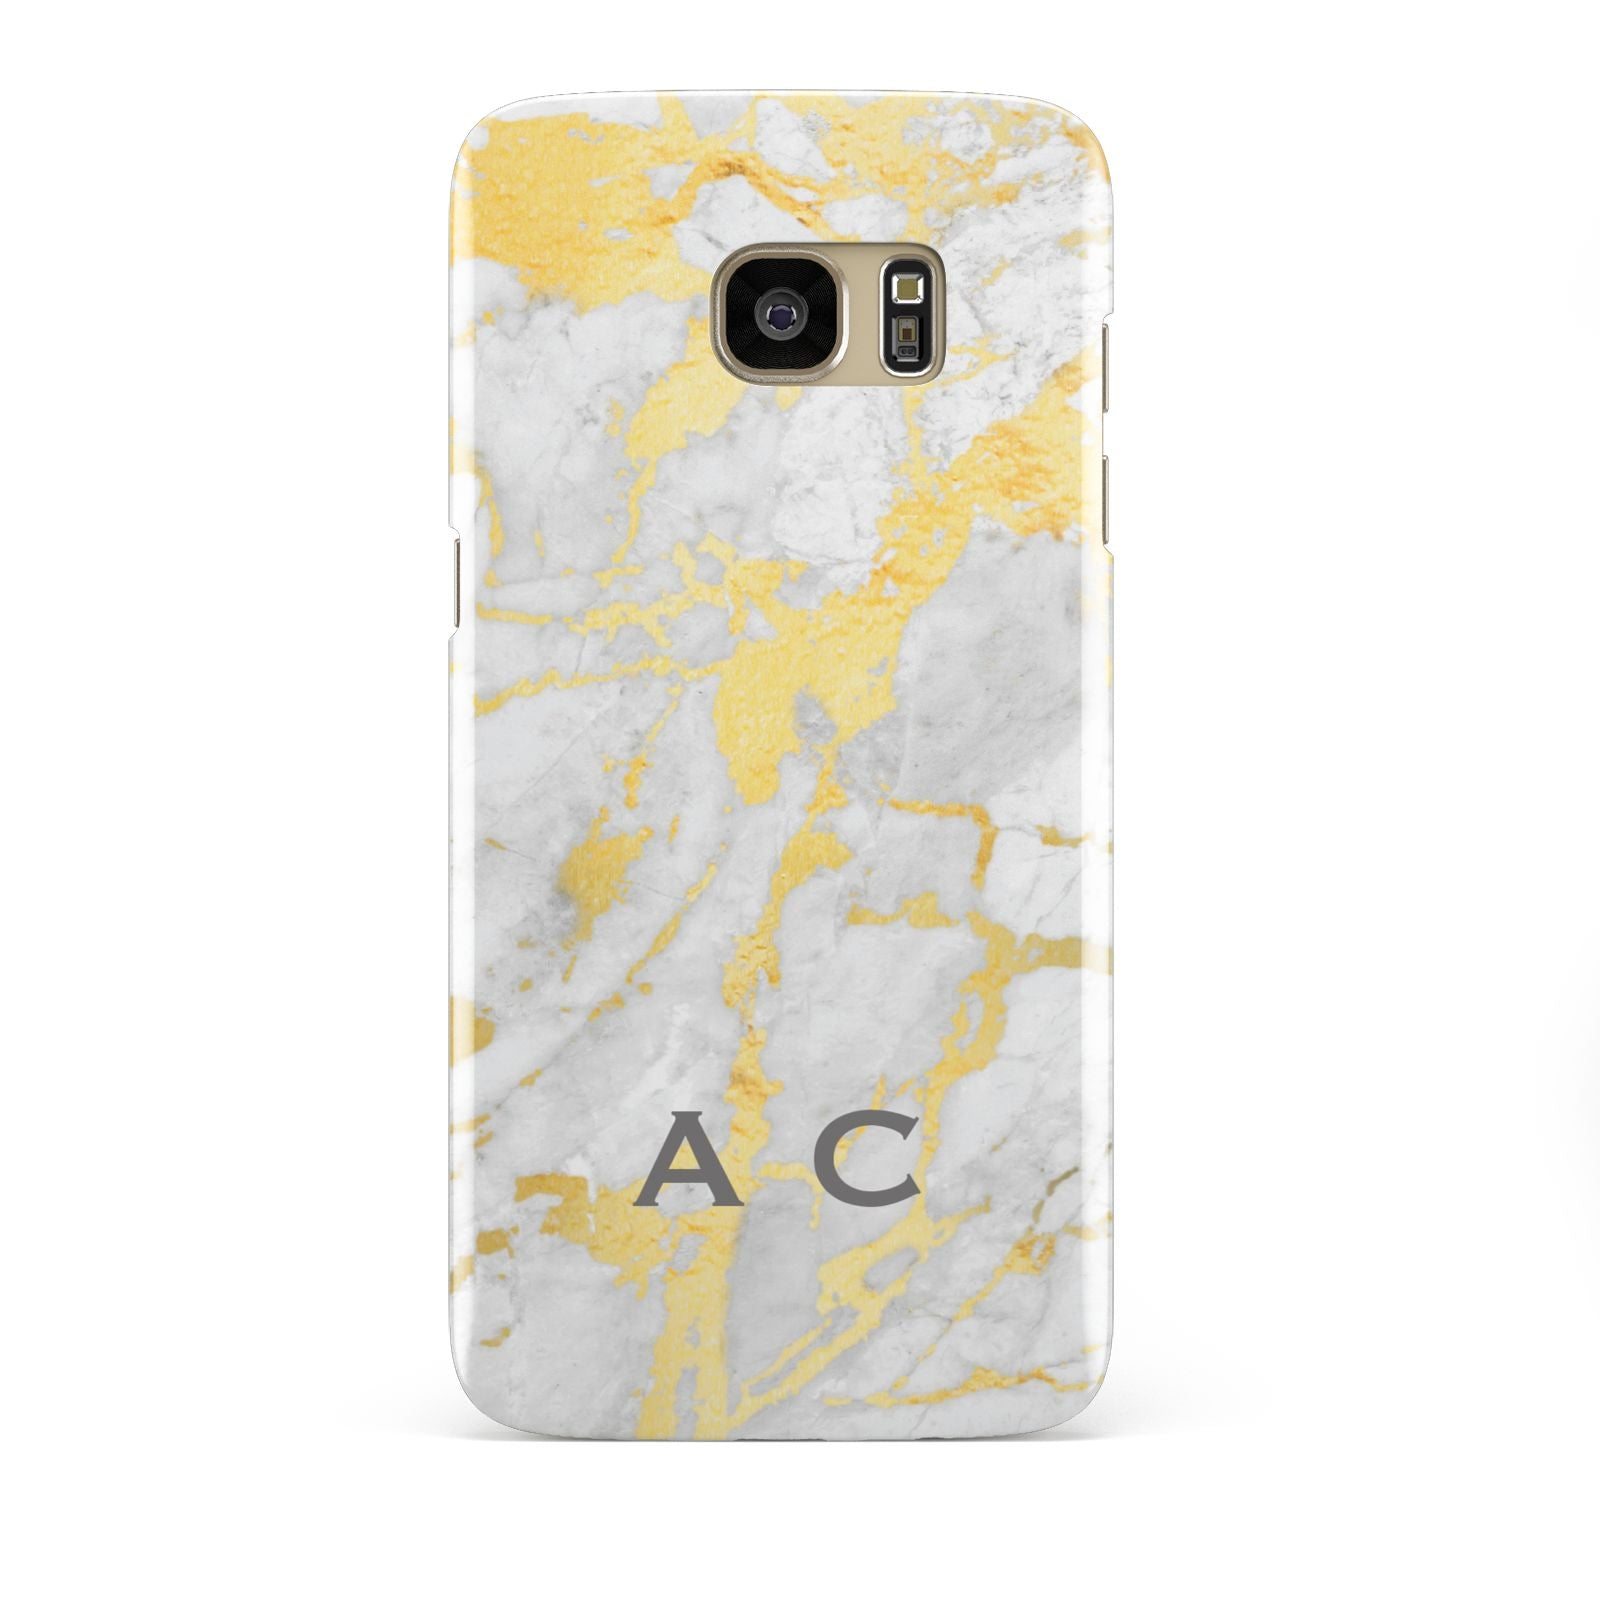 Gold Marble Initials Personalised Samsung Galaxy S7 Edge Case